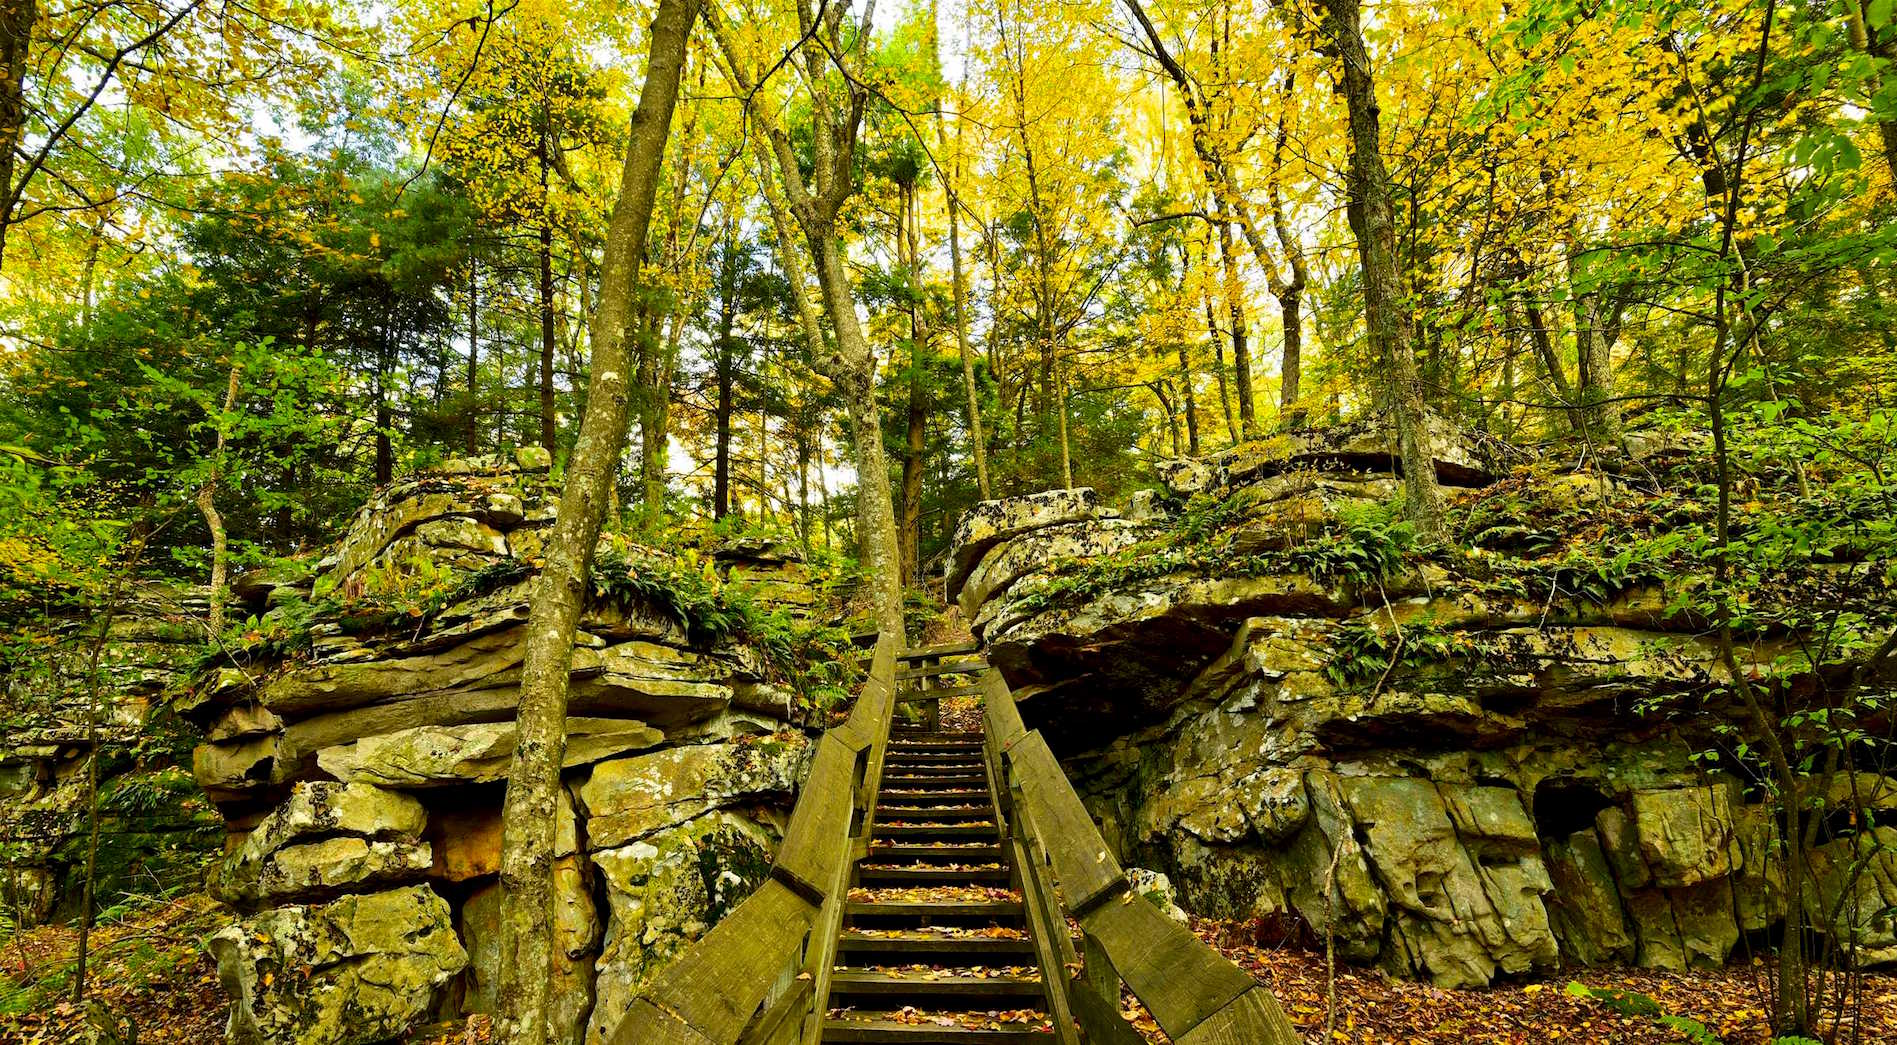 Beartown state park west virginia state parks west - Towne place at garden state park ...